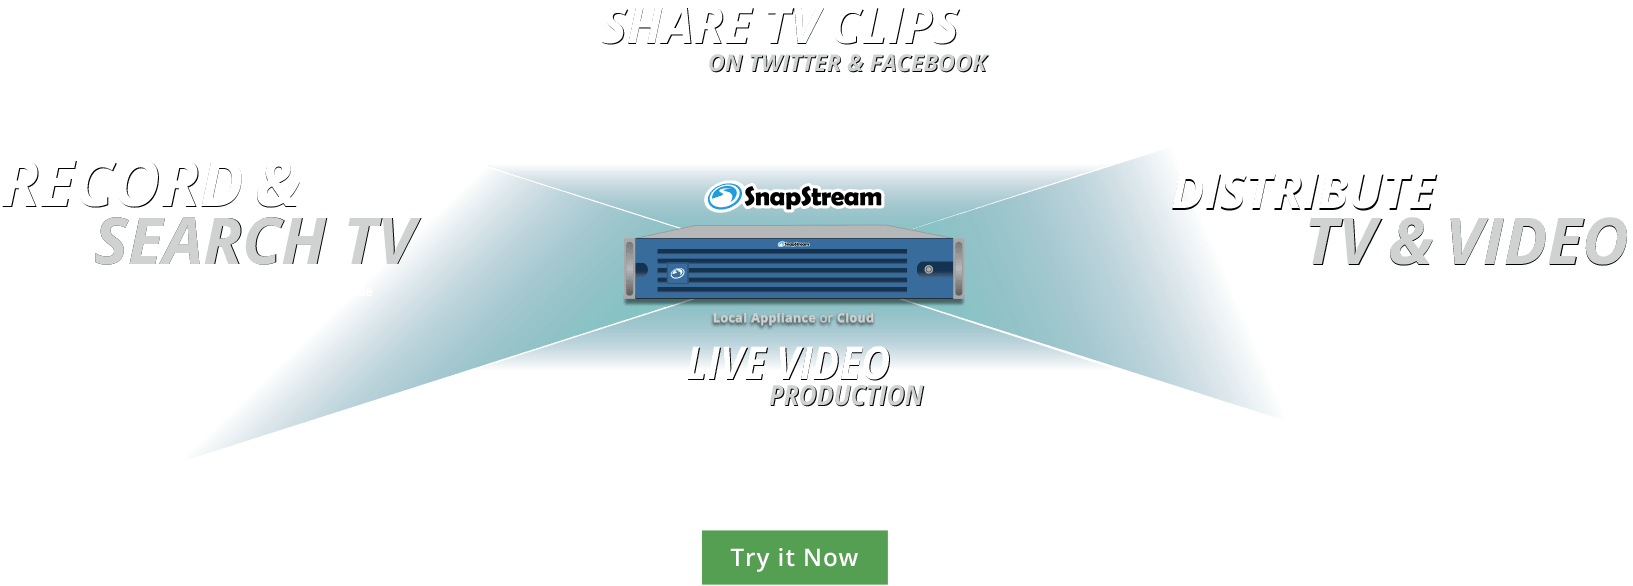 SnapStream: The DVR for Business, Share TV Clips on Twitter & Facebook, Distribute TV & Video and Live Video Production